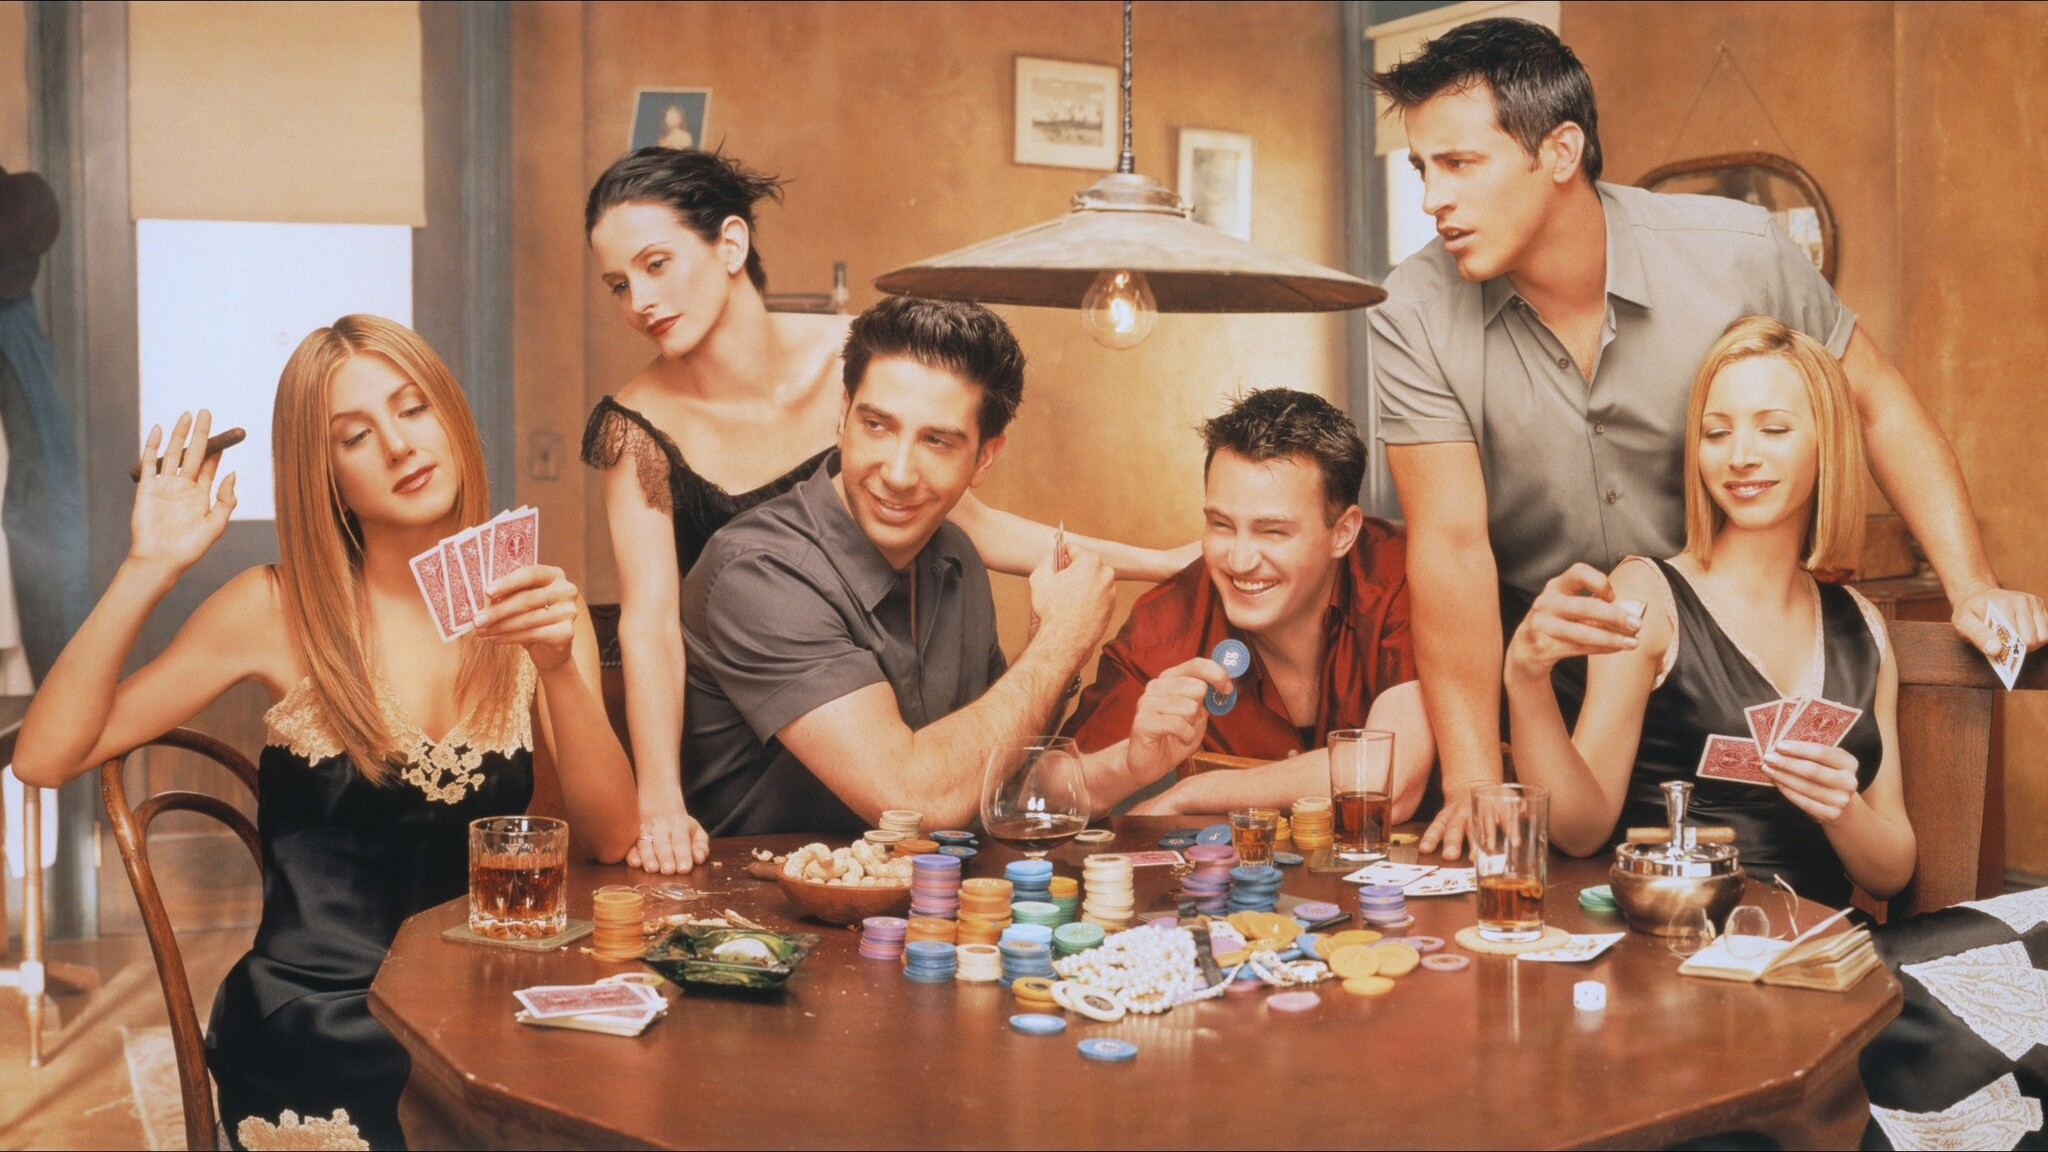 2048x1152 friends tv show 2048x1152 resolution hd 4k - Tv series wallpaper 4k ...